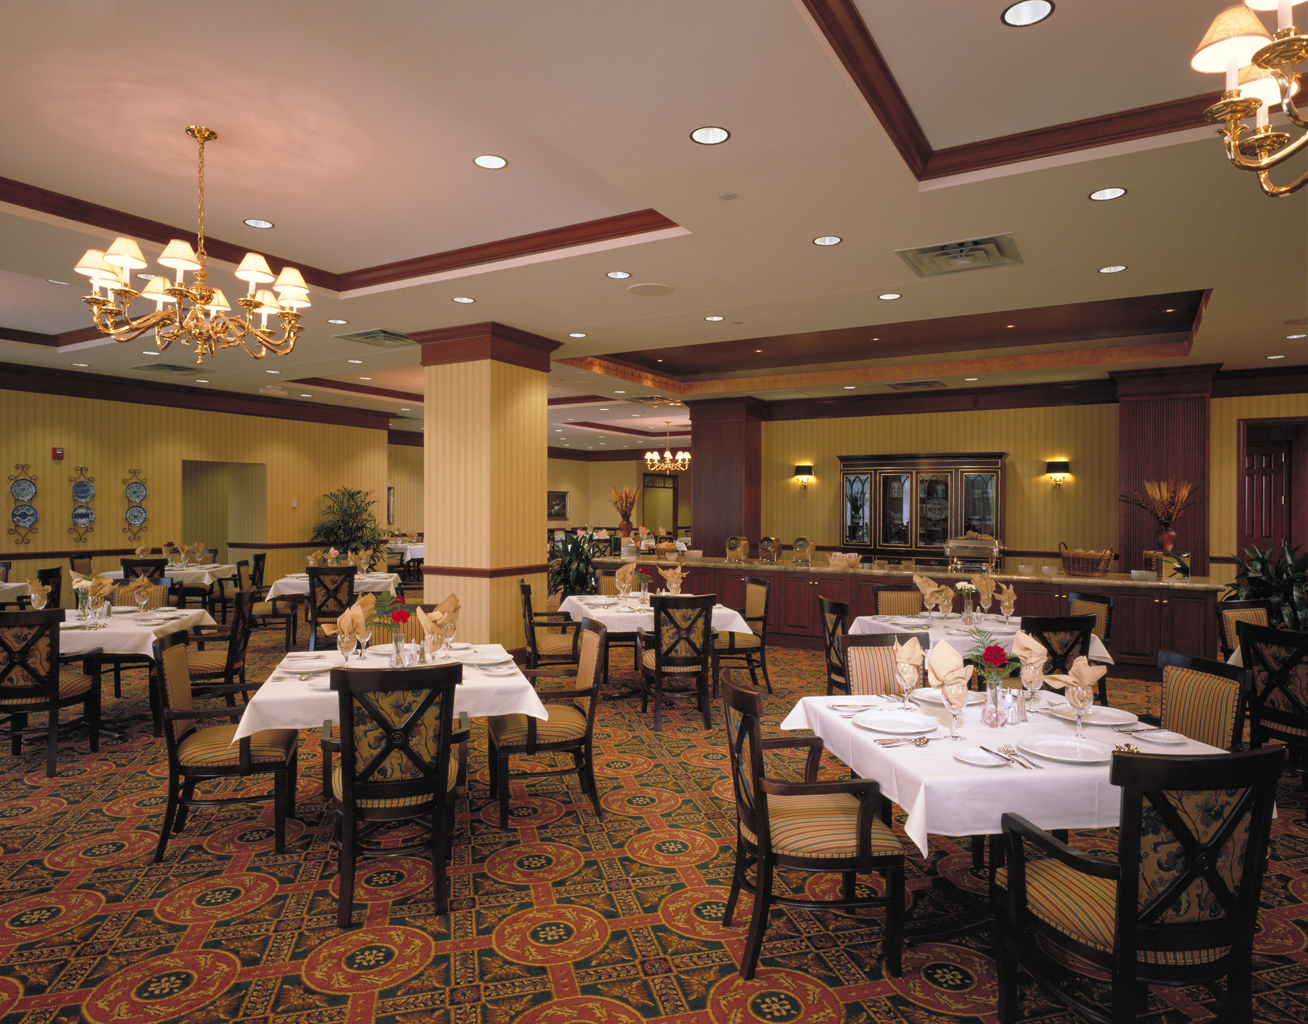 Assisted Living Dining room.jpg